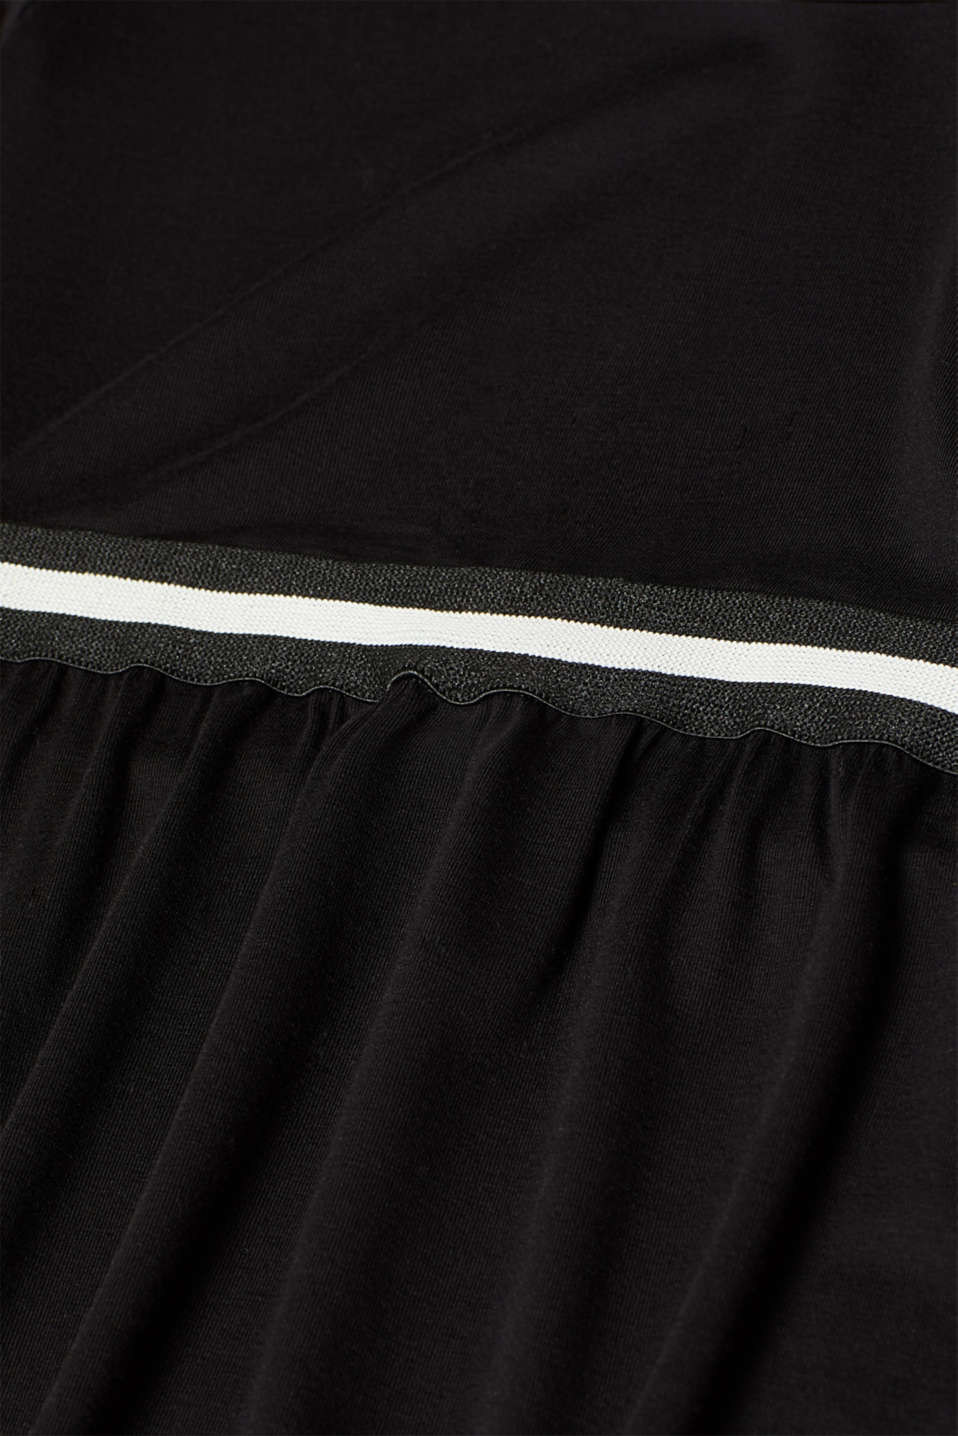 Stretch jersey long sleeve top with elasticated tape, LCBLACK, detail image number 4